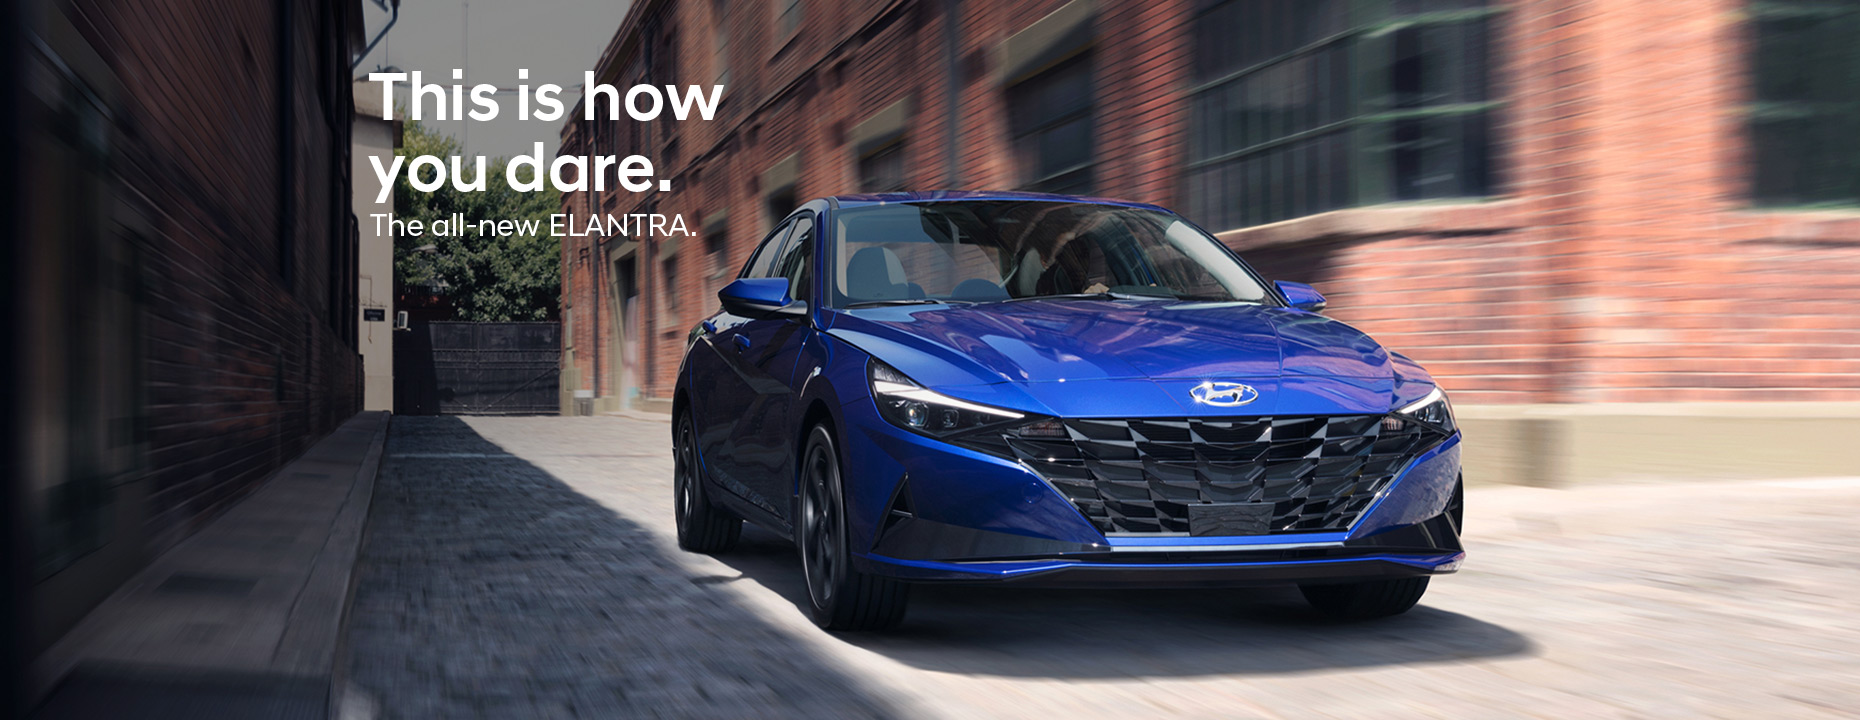 The all-new Elantra